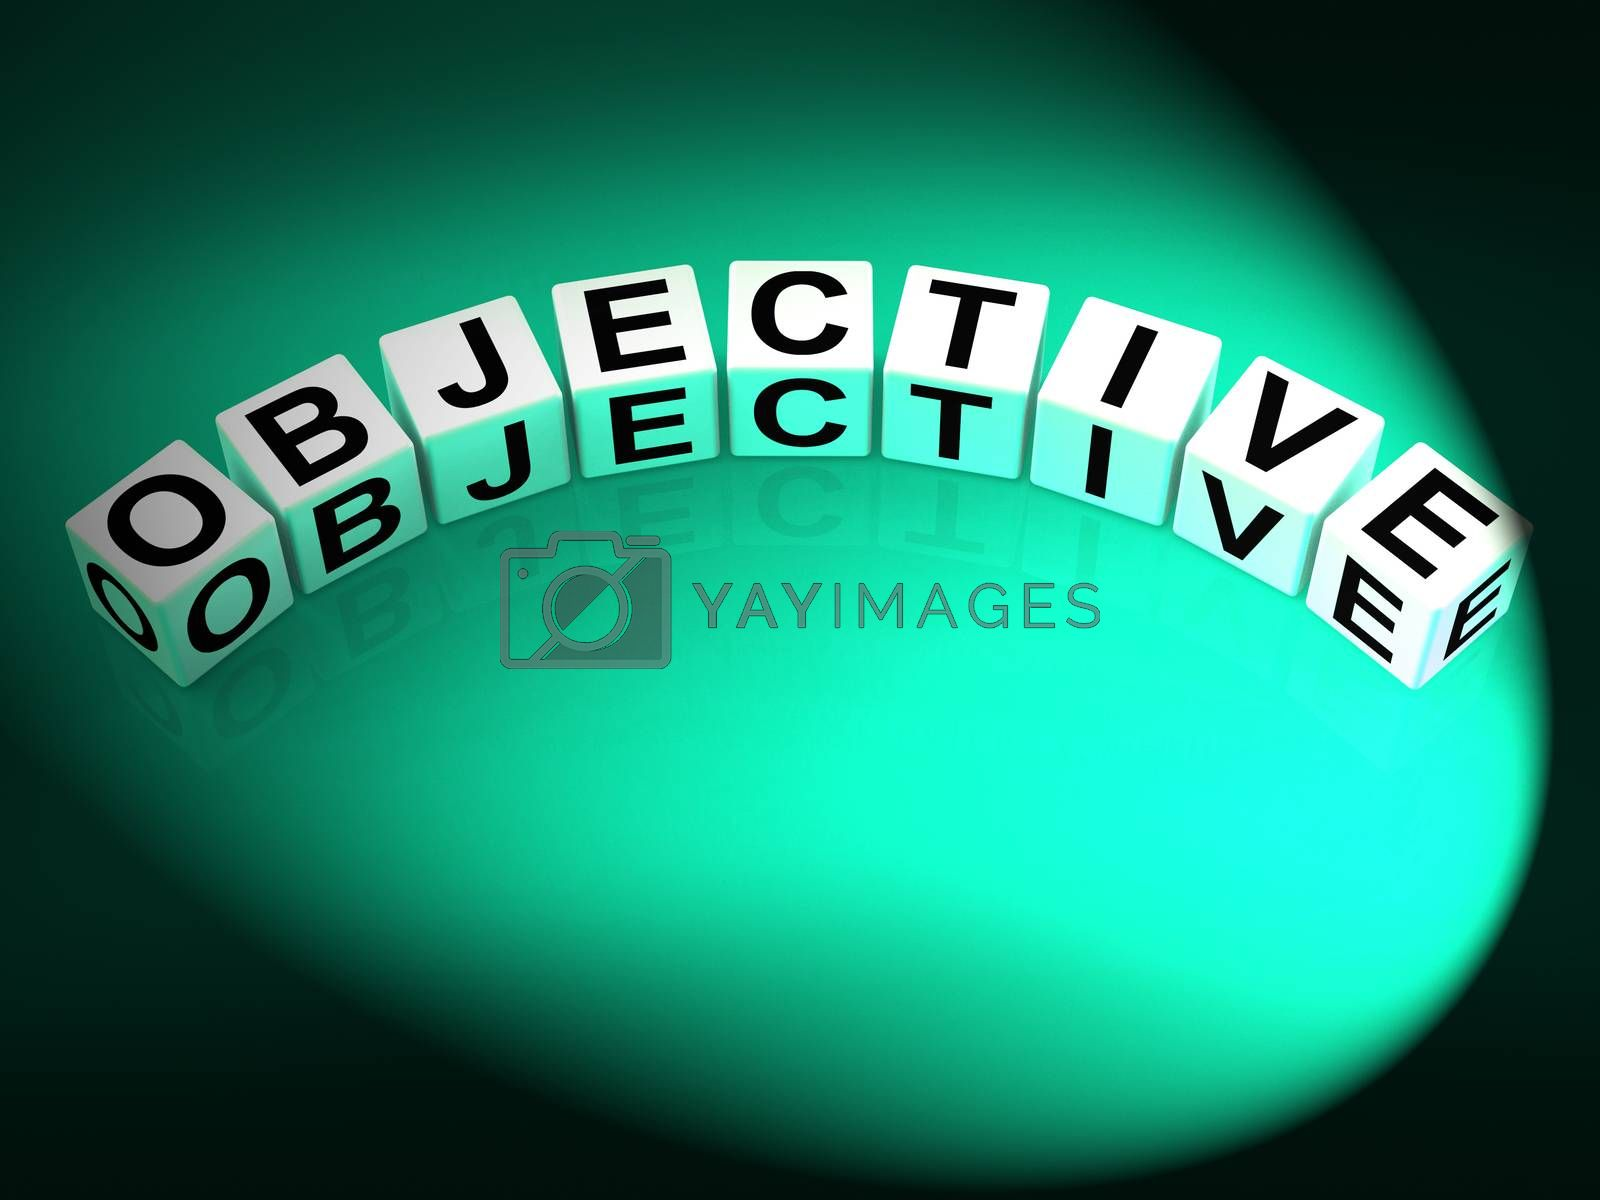 Objective Dice Mean Goals Targets and Objectives by stuartmiles